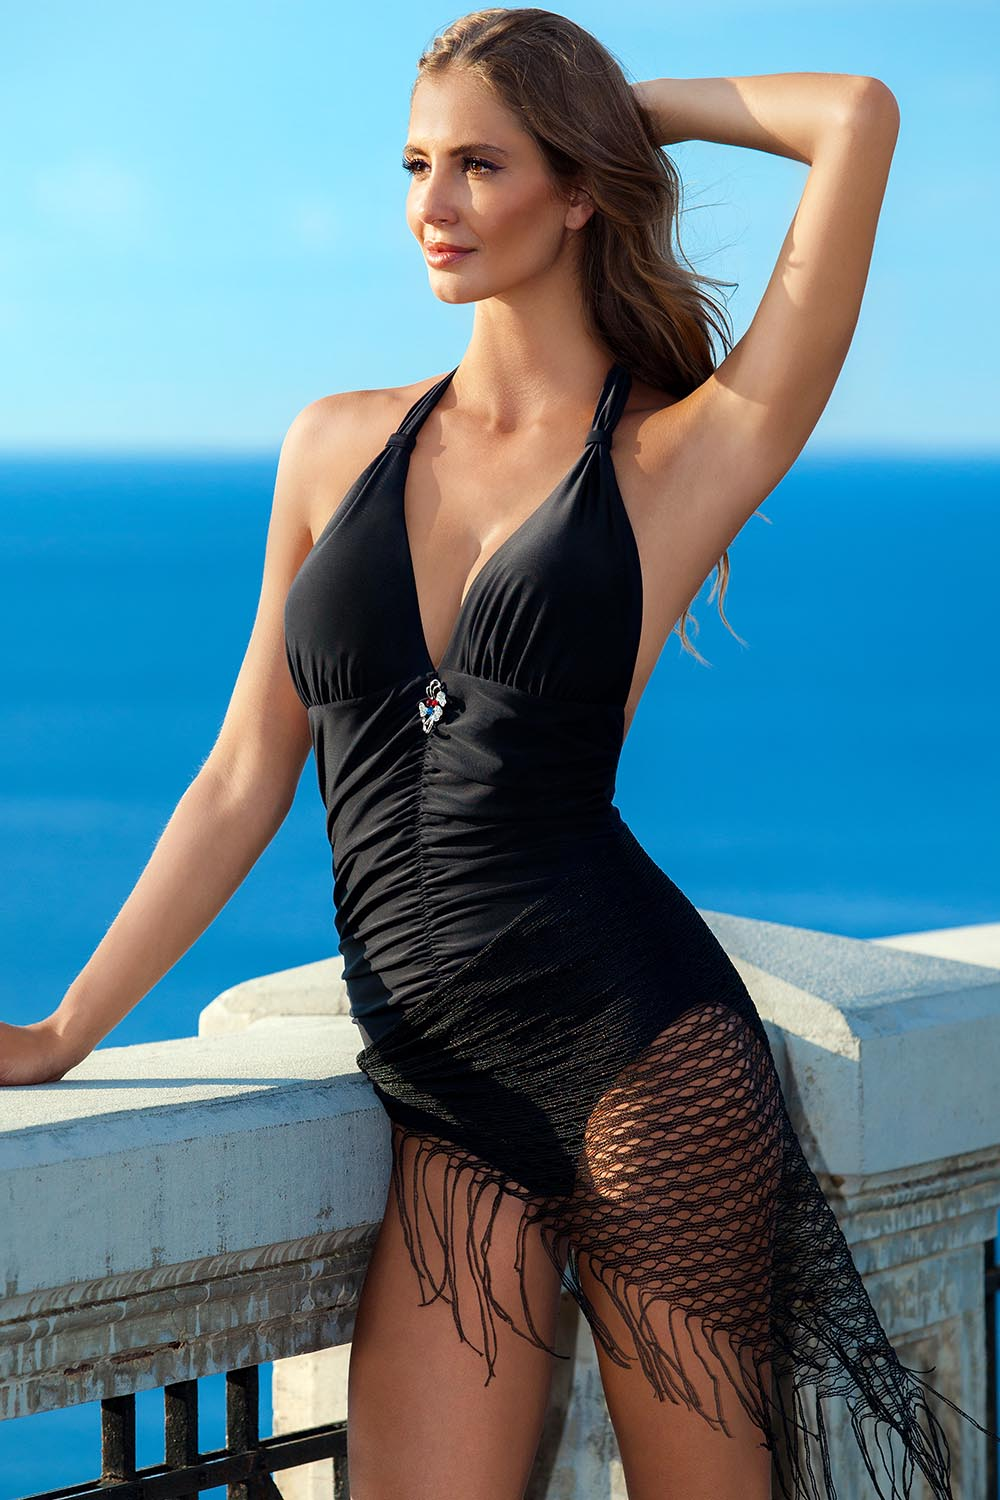 Swimsuit one piece model 93352 Ewlon